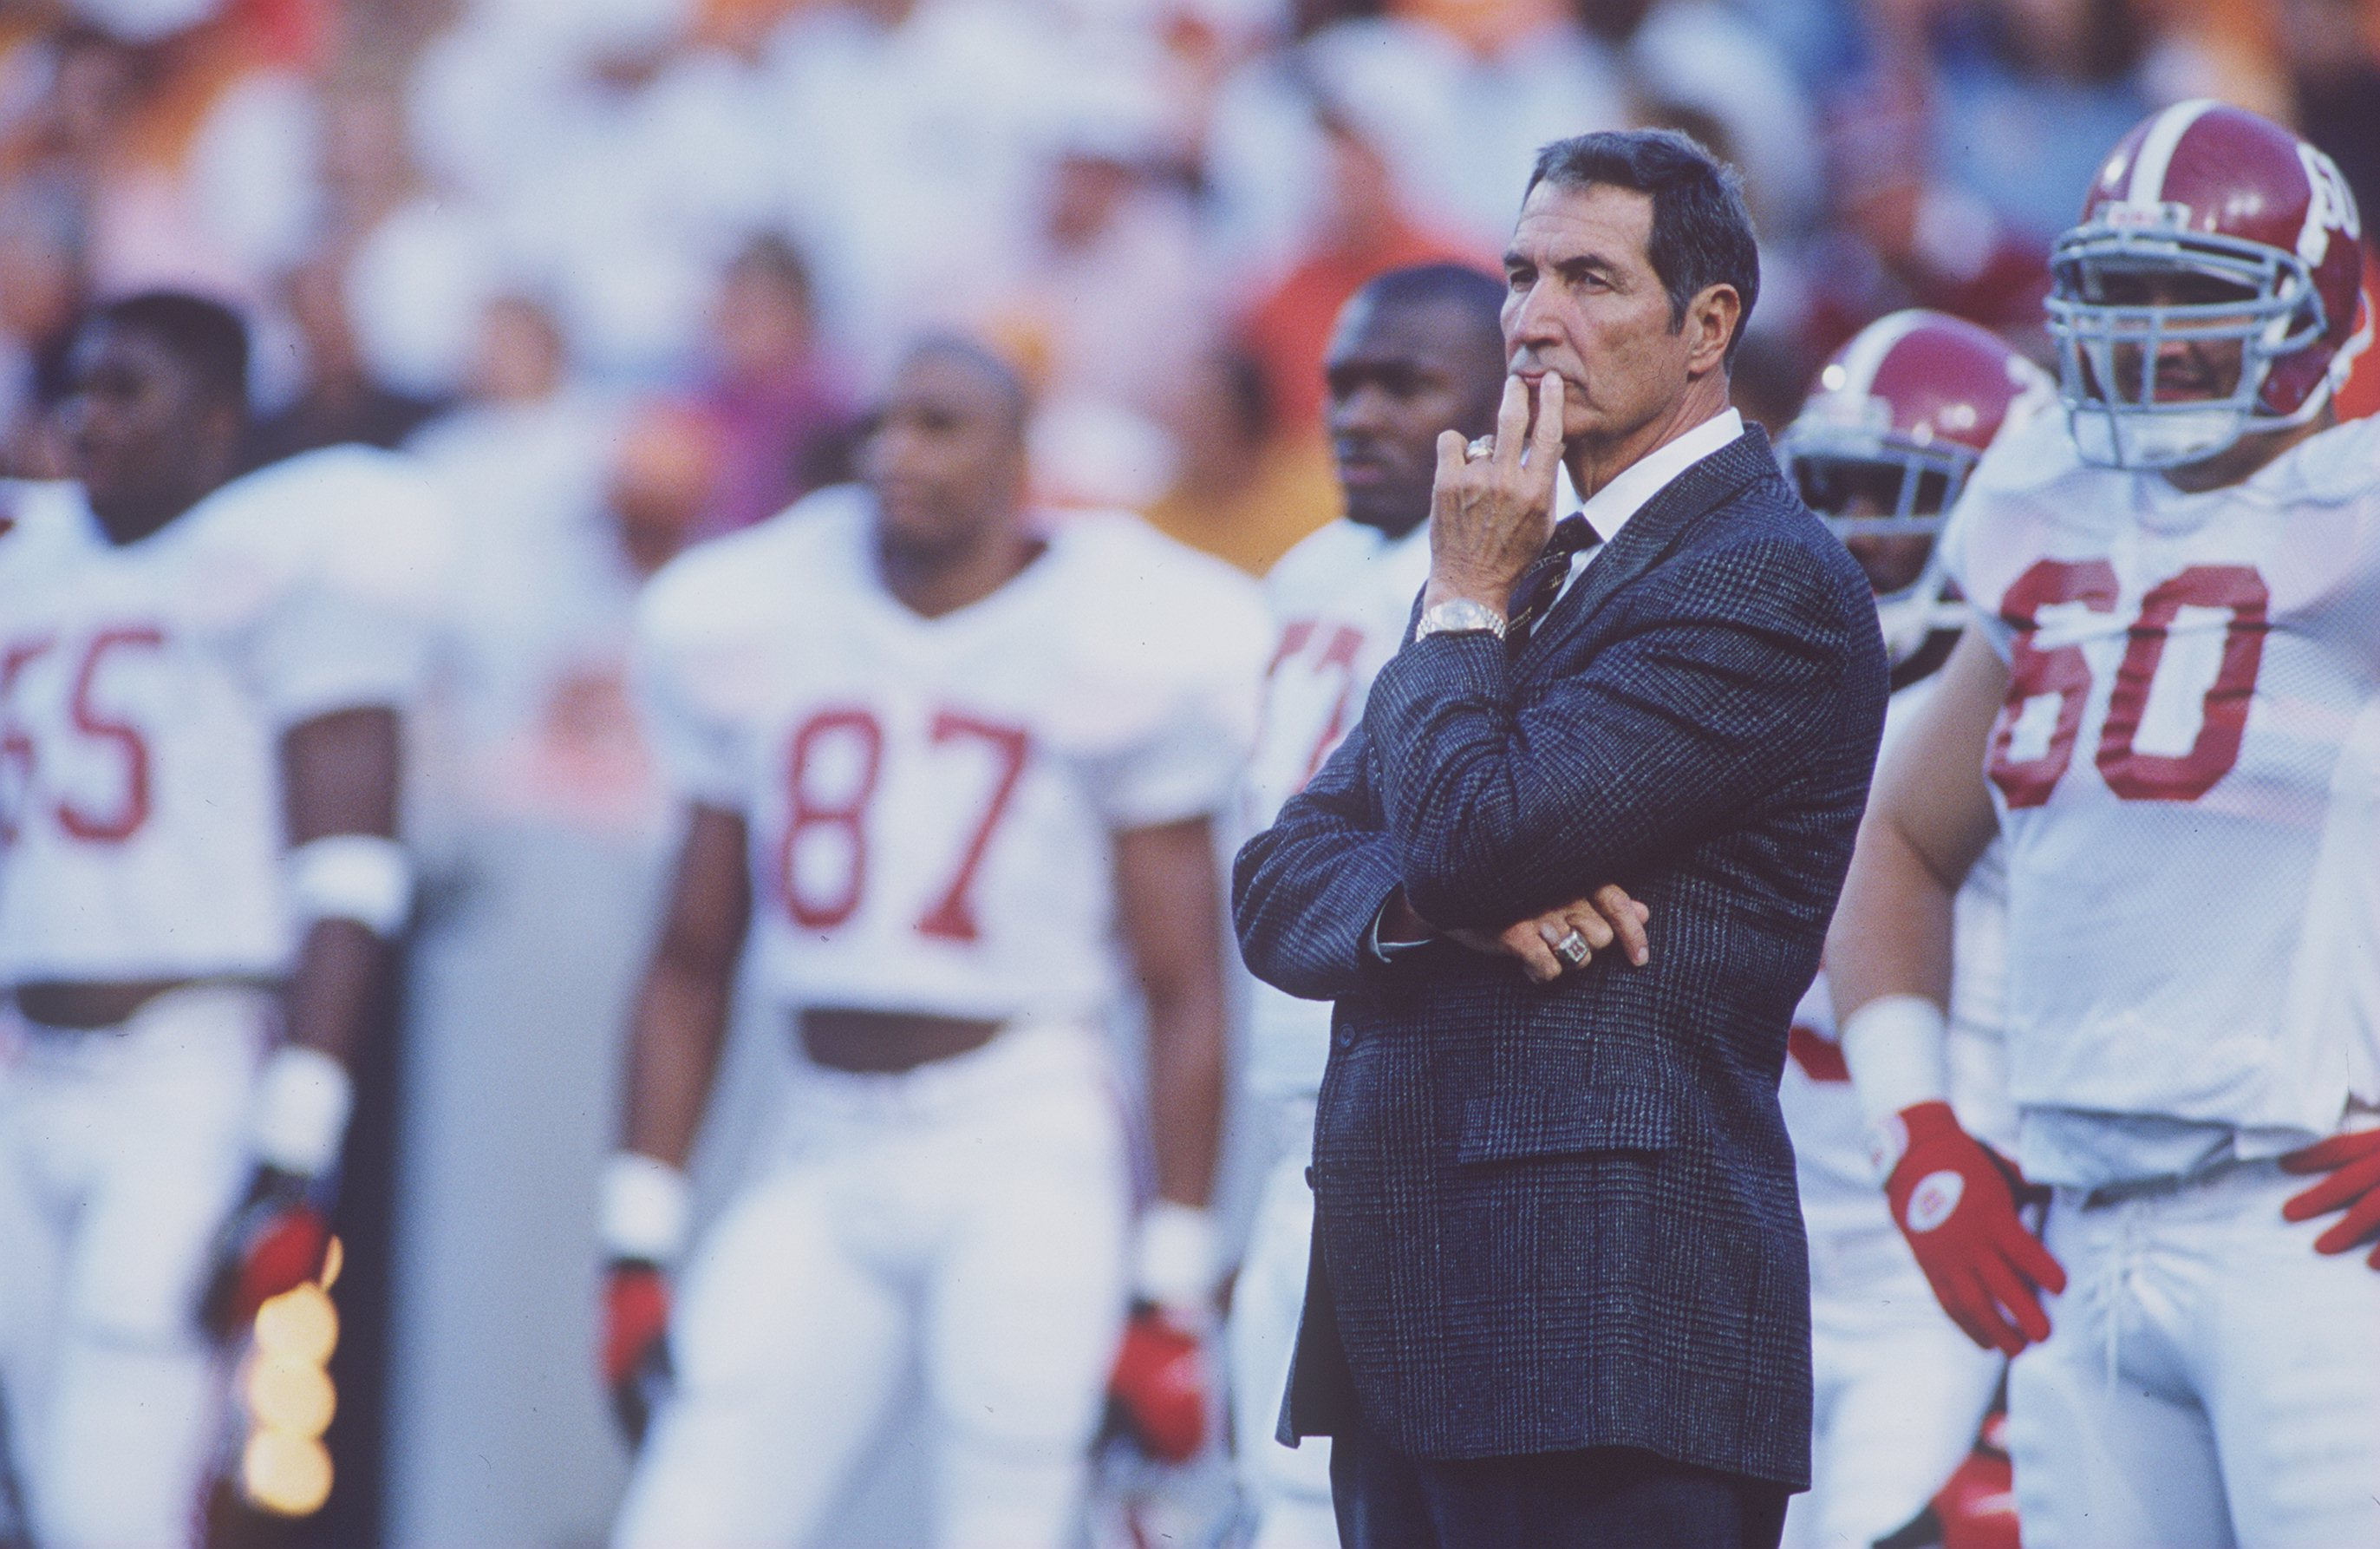 15 OCT 1994:  ALABAMA HEAD COACH GENE STALLINGS STANDS ON THE FIELD WITH HIS TEAM BEFORE THE CRIMSON TIDE'S 17-13 VICTORY OVER THE TENNESSEE VOLUNTEERS AT NEYLAND STADIUM IN KNOXVILLE, TENNESSEE Mandatory Credit: Rick Stewart/ALLSPORT